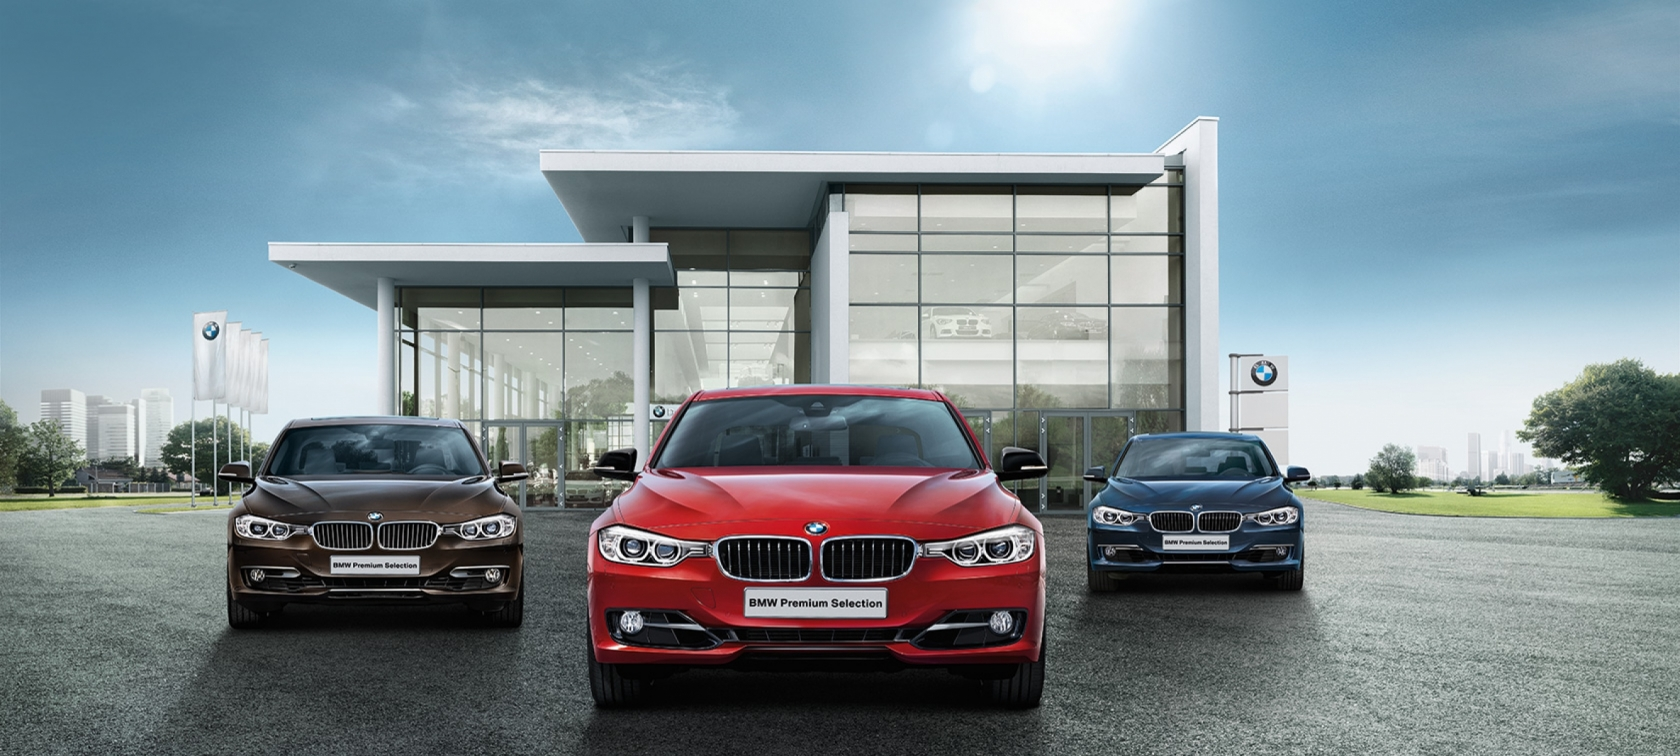 BMW PREMIUM SELECTION E OCCASIONI.